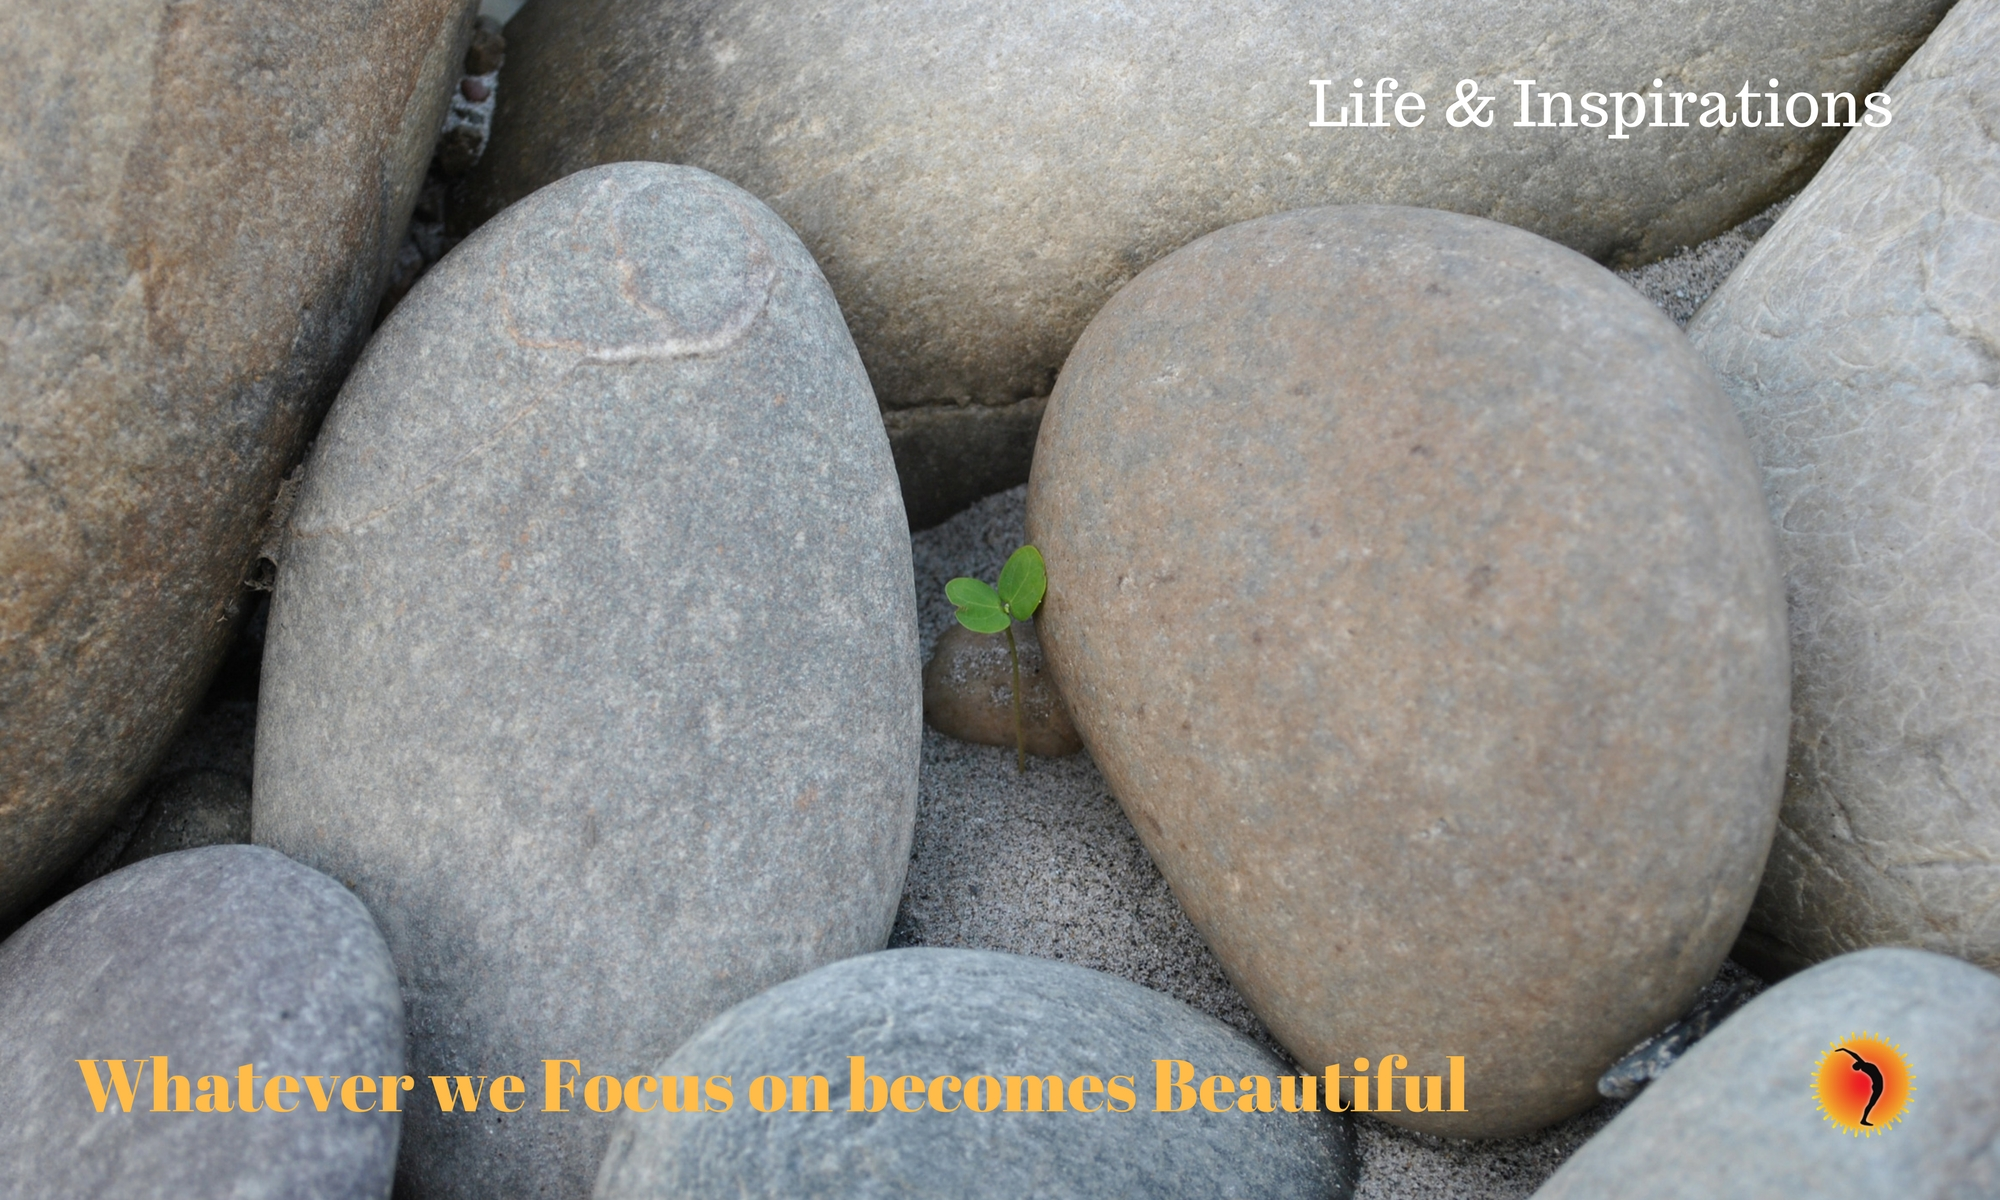 Whatever we focus on becomes beautiful